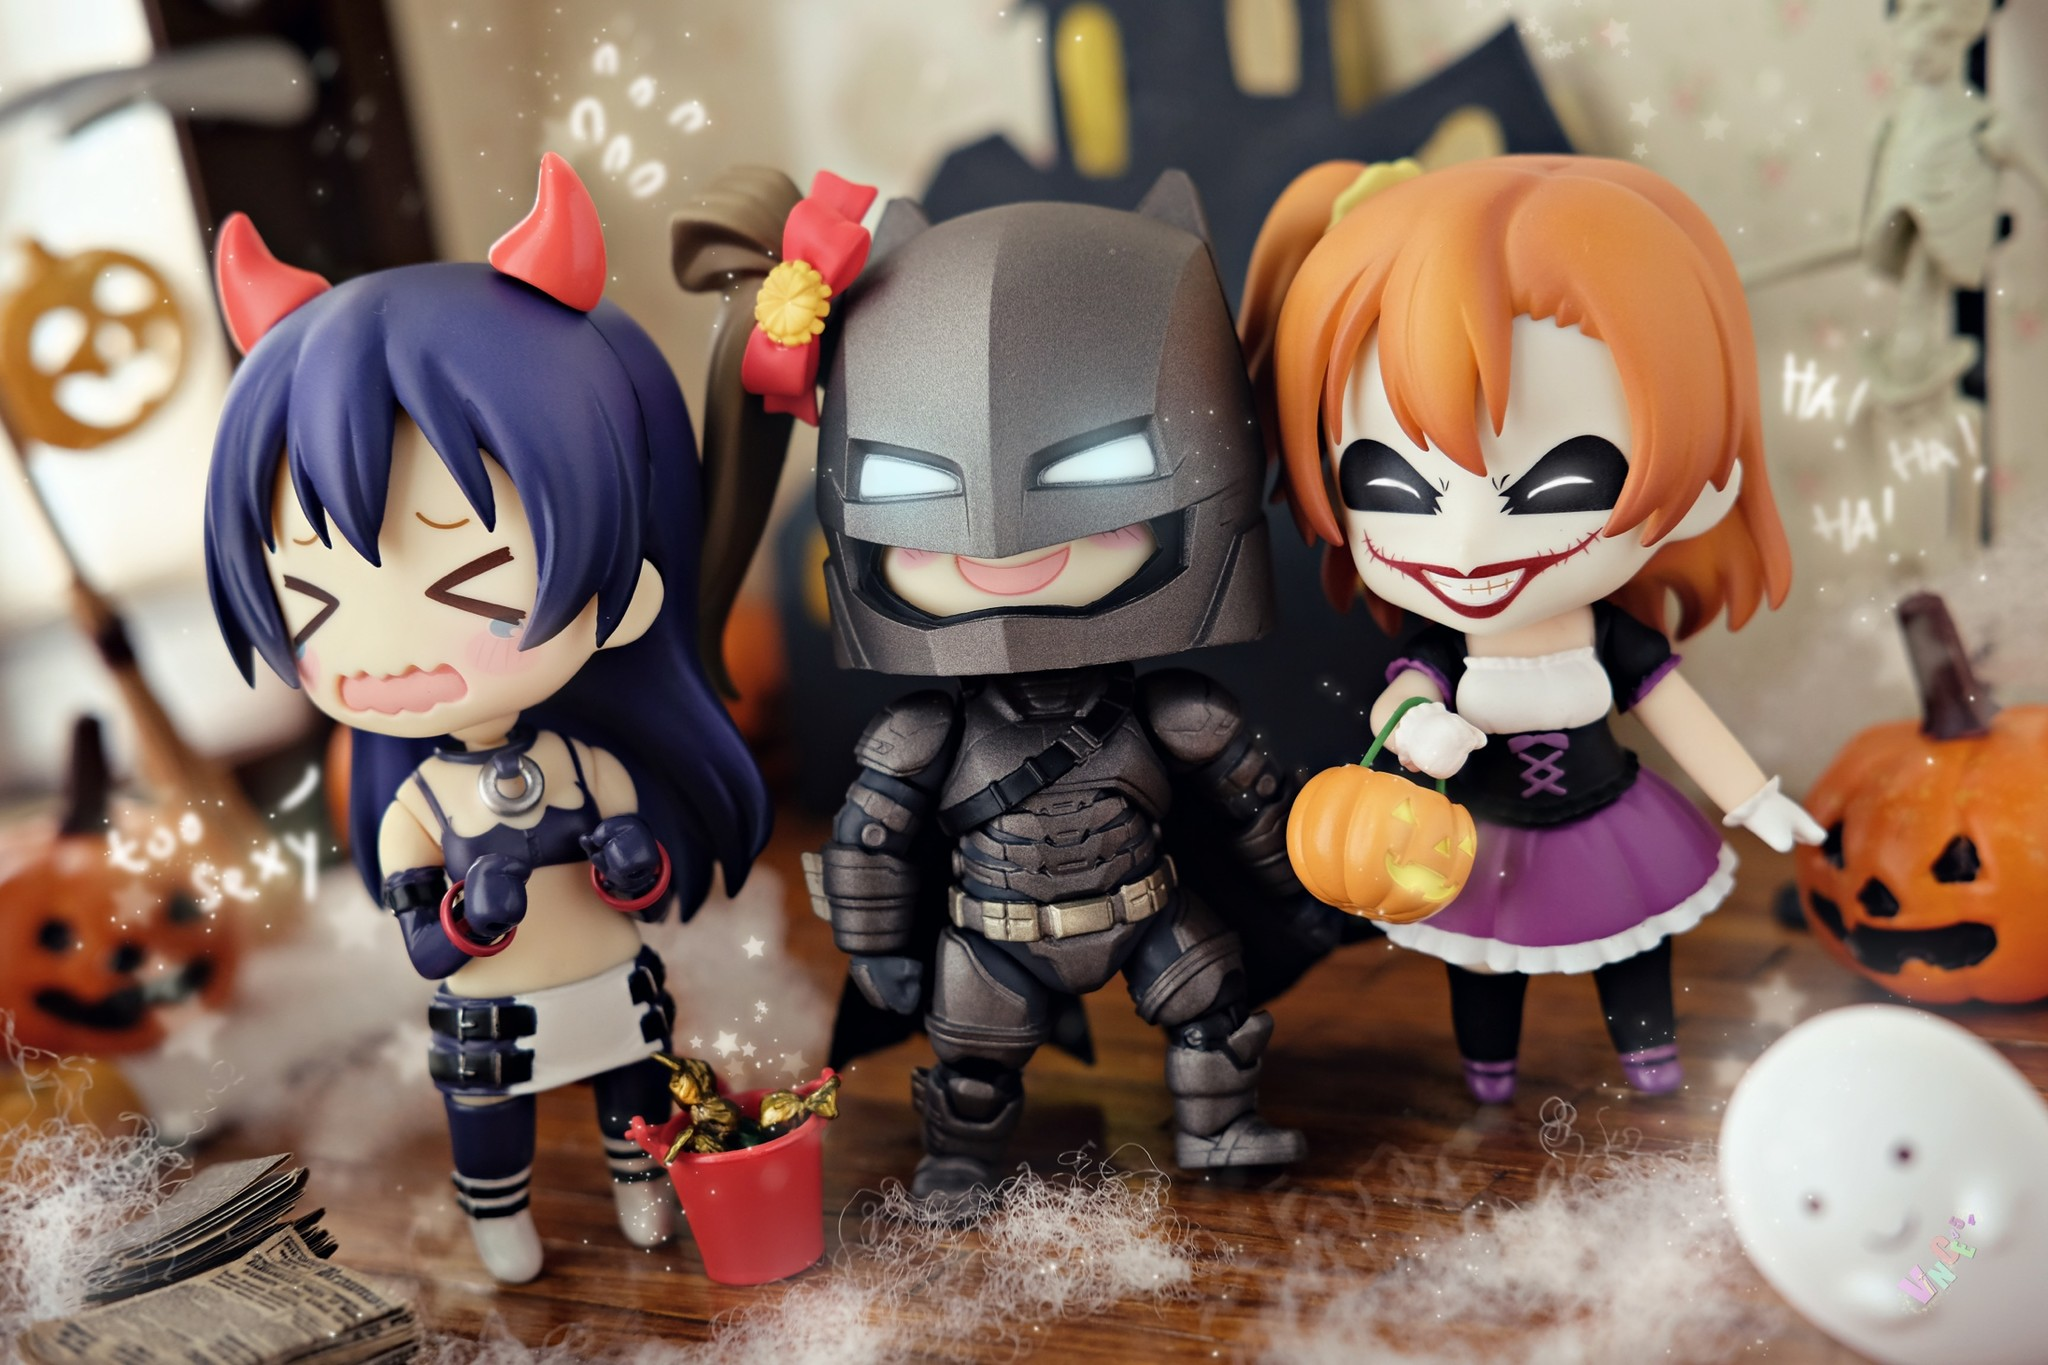 nendoroid uplark good_smile_company etna batman joker the_dark_knight phat_company nendoron jun_(e.v.) makai_senki_disgaea nippon_ichi_software me-n itandi love_live!_school_idol_project k2b ehenmushi kousaka_honoka sonoda_umi minami_kotori shichibee iguchi_shinya batman_v_superman:_dawn_of_justice